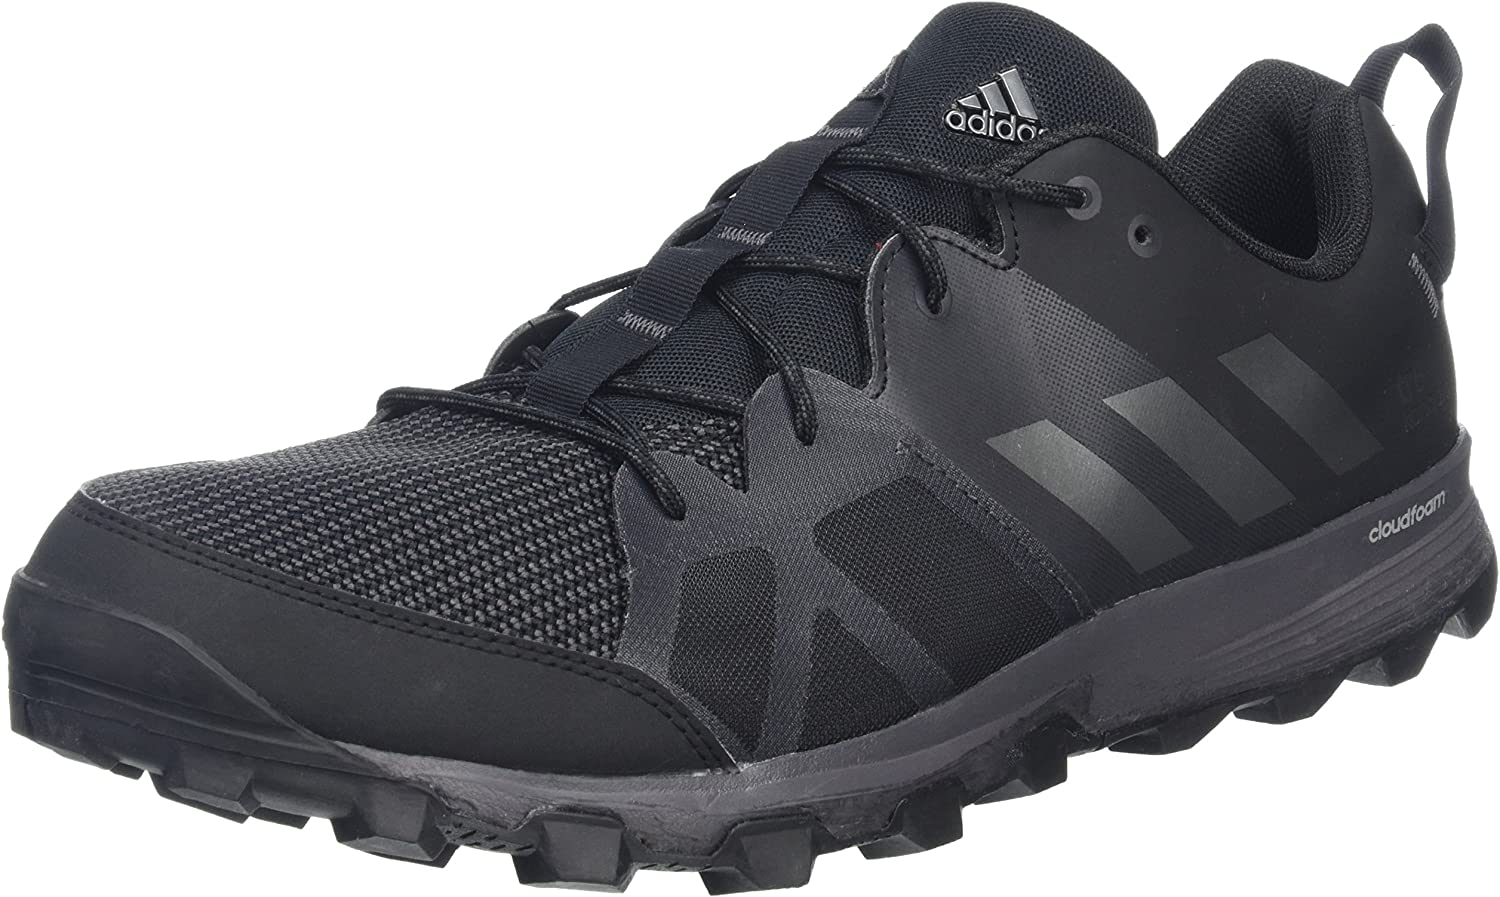 Adidas Kanadia 8 TR Running shoes - AW16